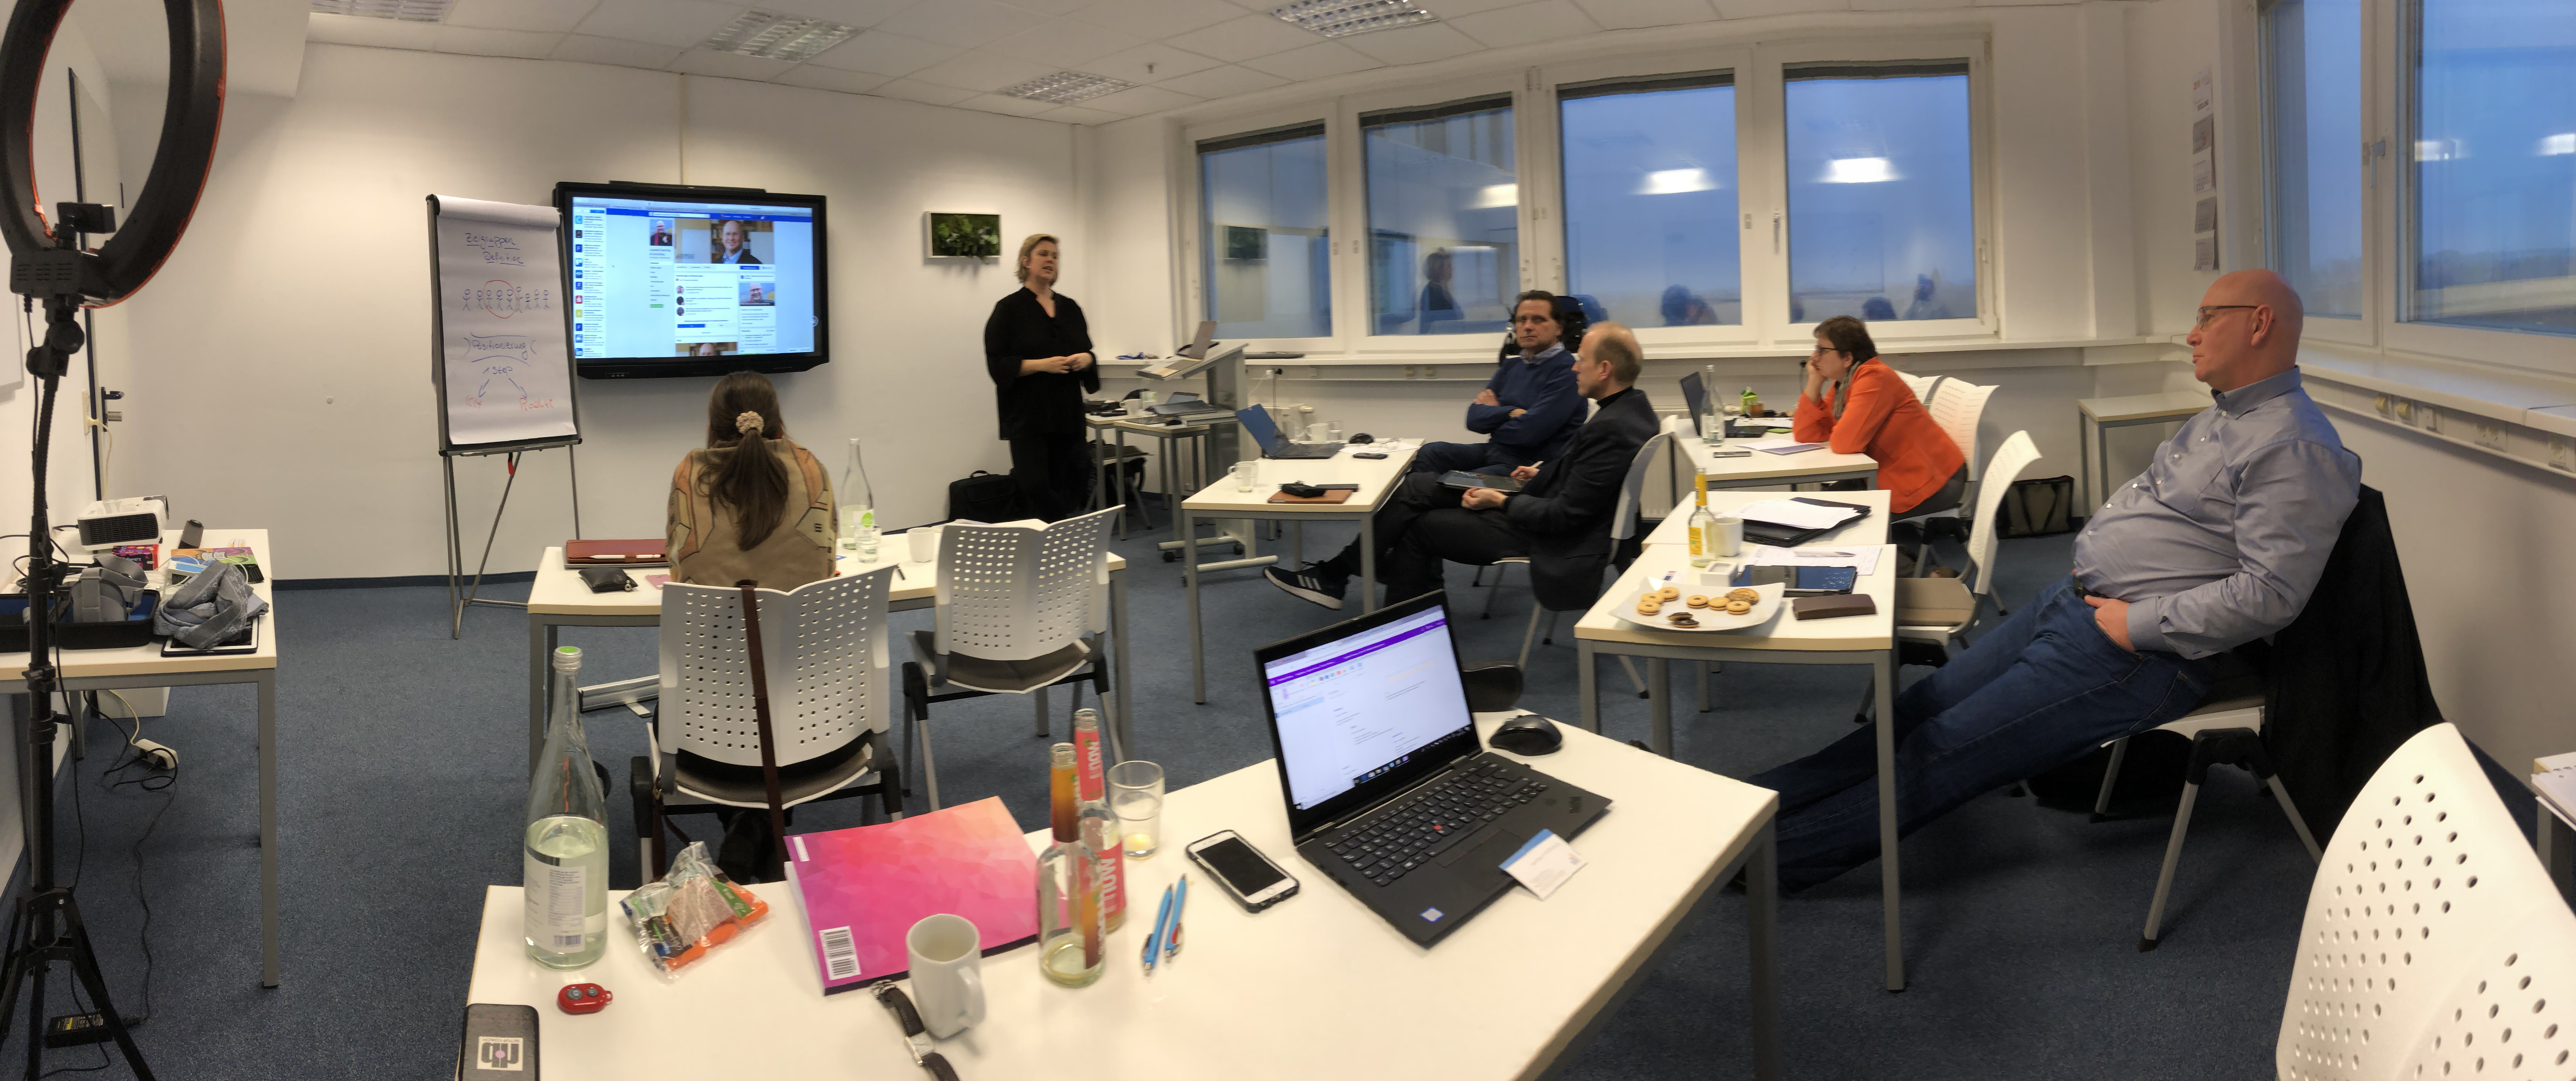 Bild: Aus dem Workshop DIGITAL TRAINER